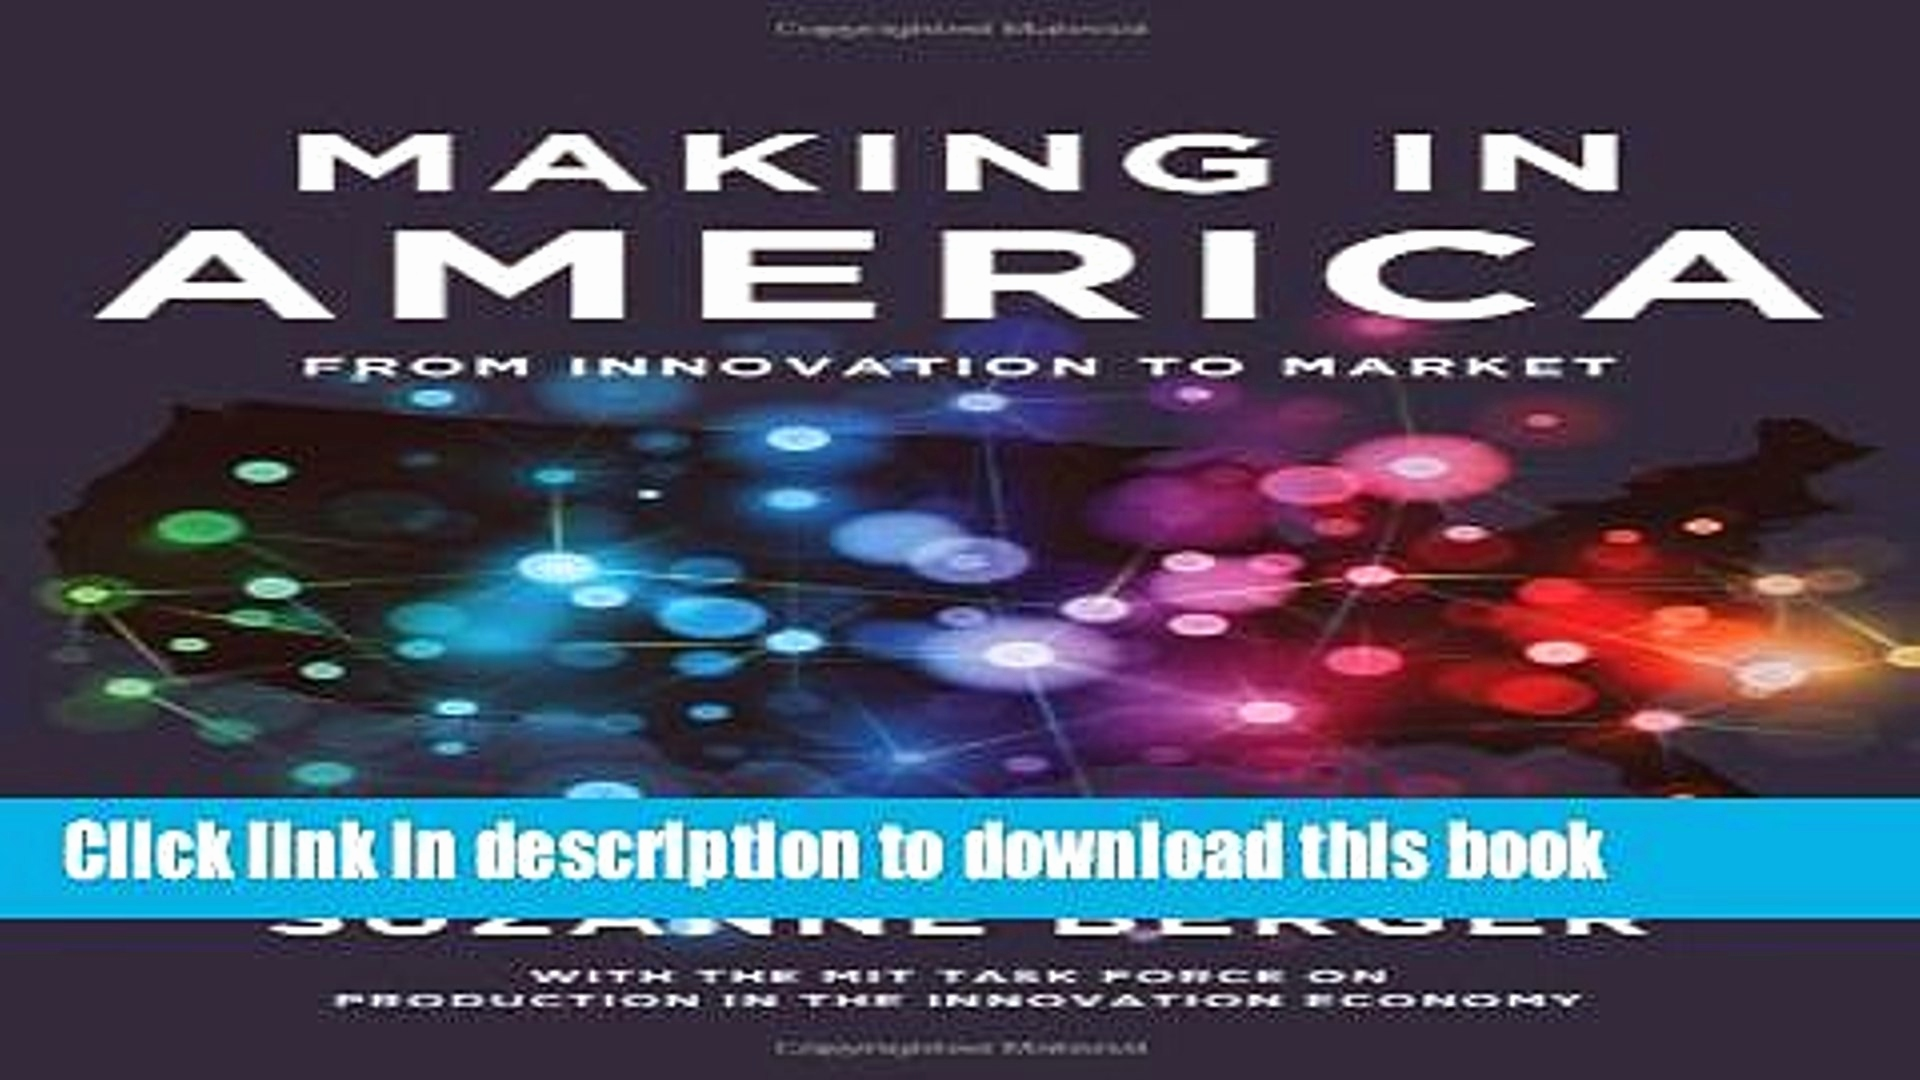 Zoobe Com Kostenlos Deutsch Einzigartig Read Pdf] Making In America From Innovation to Market Mit Press